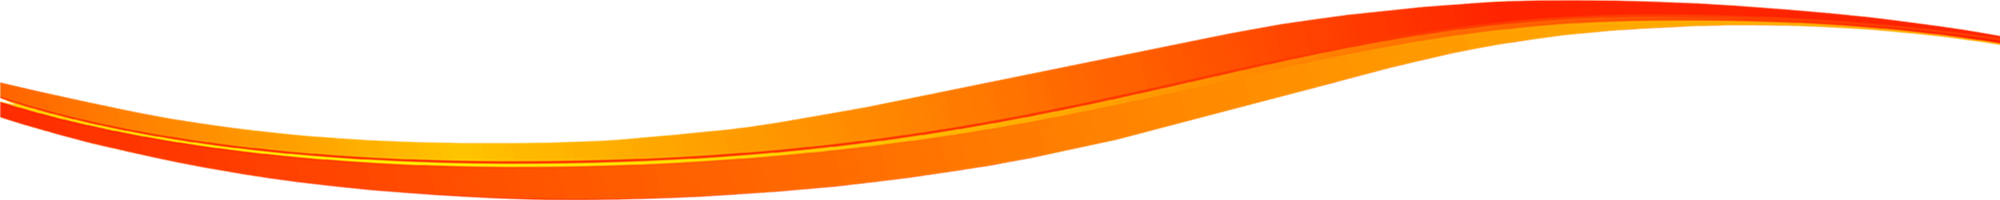 Orange clipart divider Learn NutriStart Products more